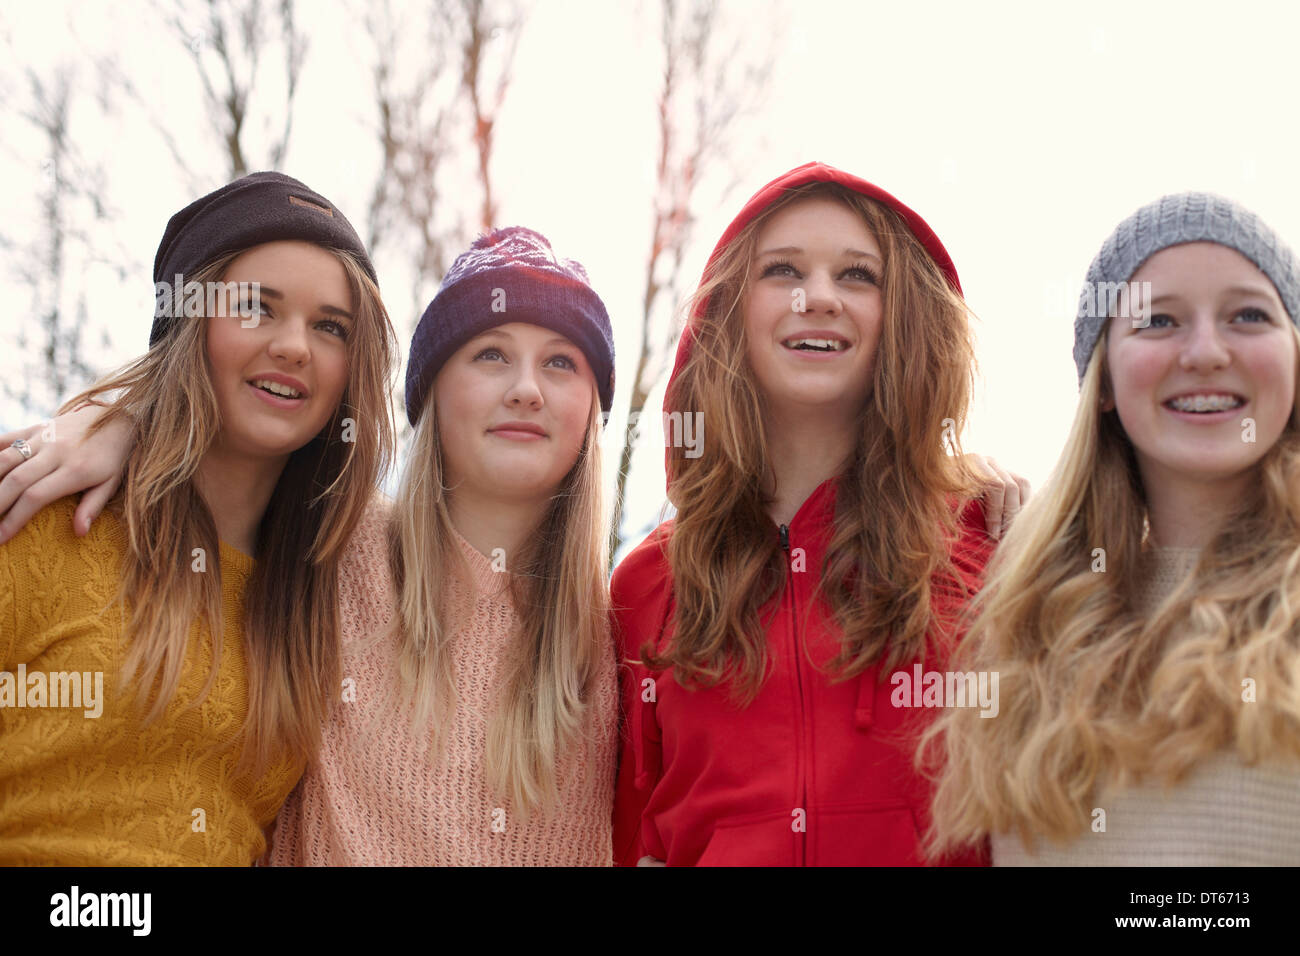 Portrait of four teenage girls in hats - Stock Image